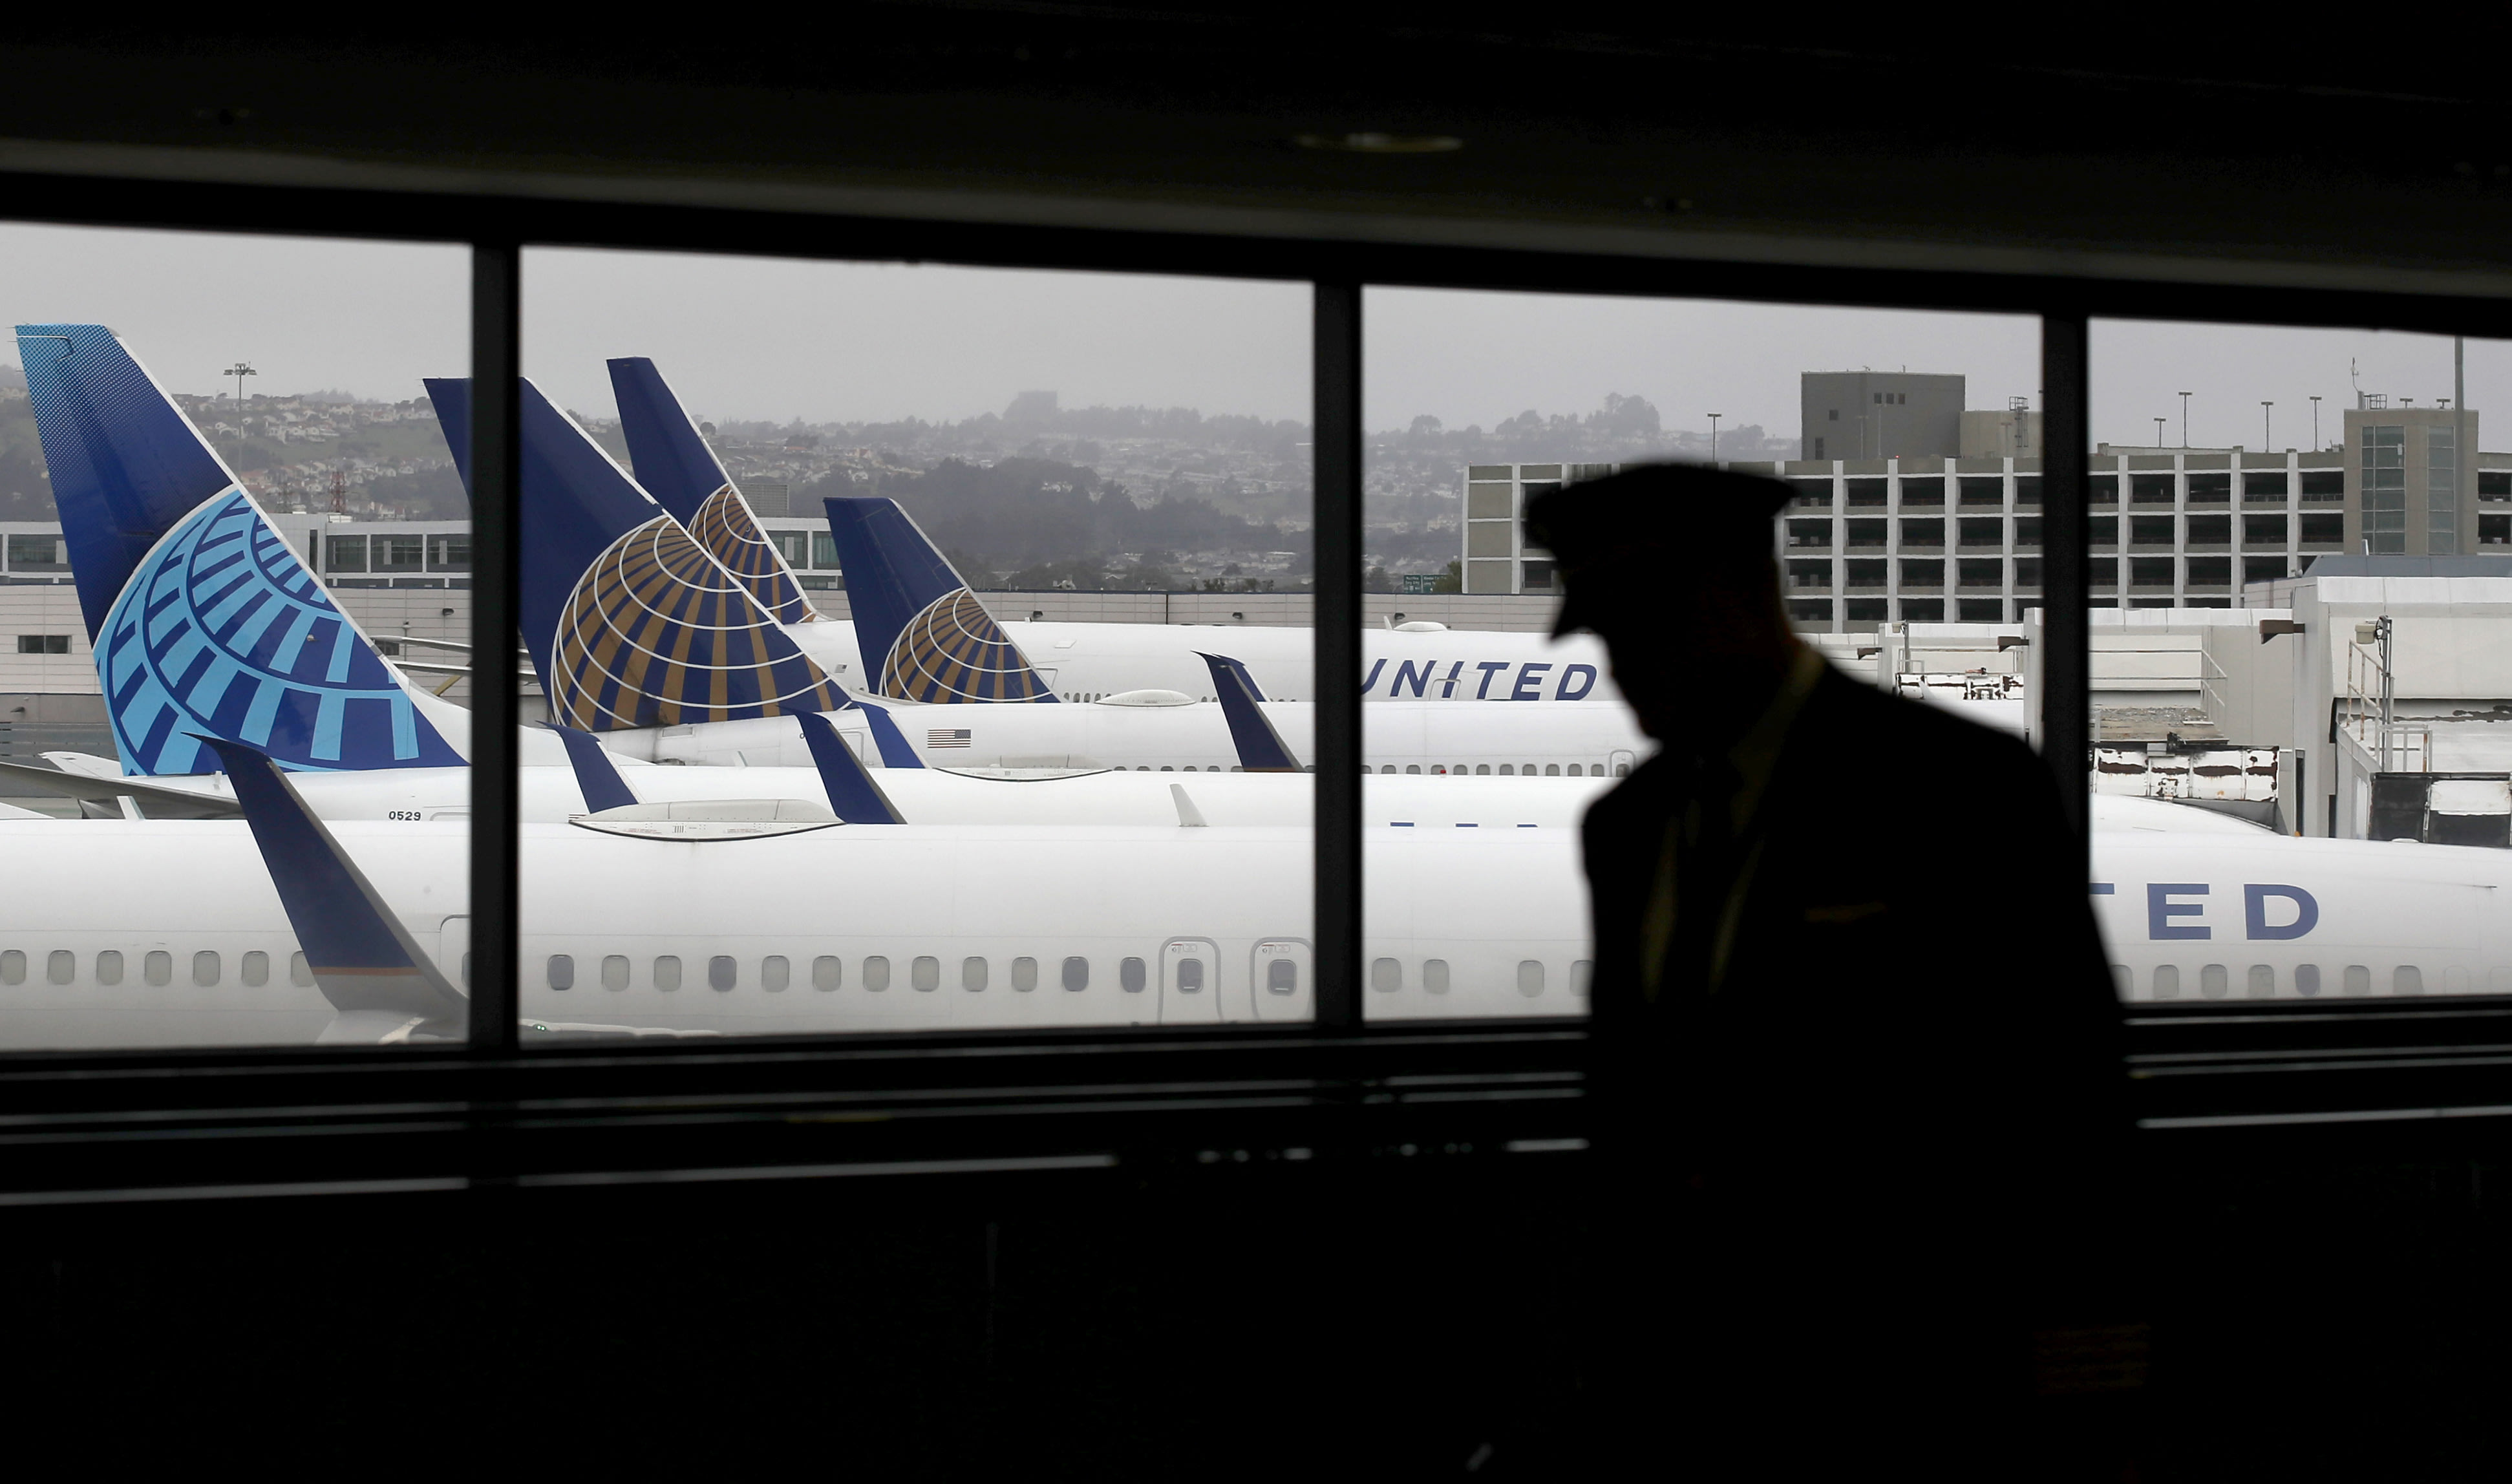 United warns it could furlough more pilots, extends voluntary leave deadlines